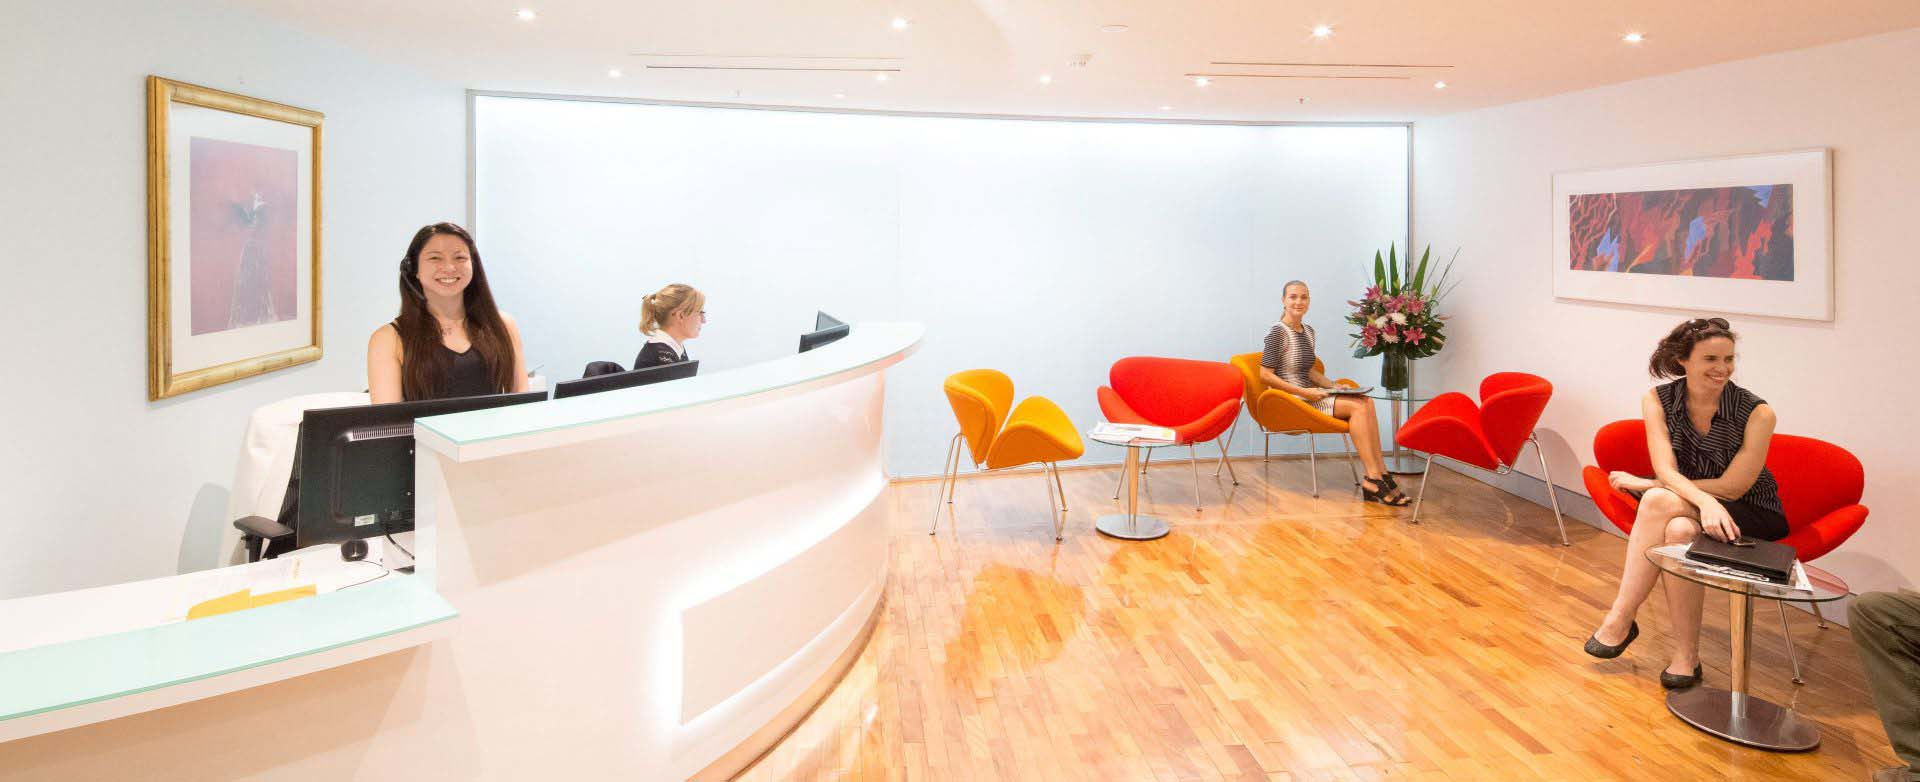 serviced-offices-meeting-room-hire-sydney-chatswood-virtual-offices-soi